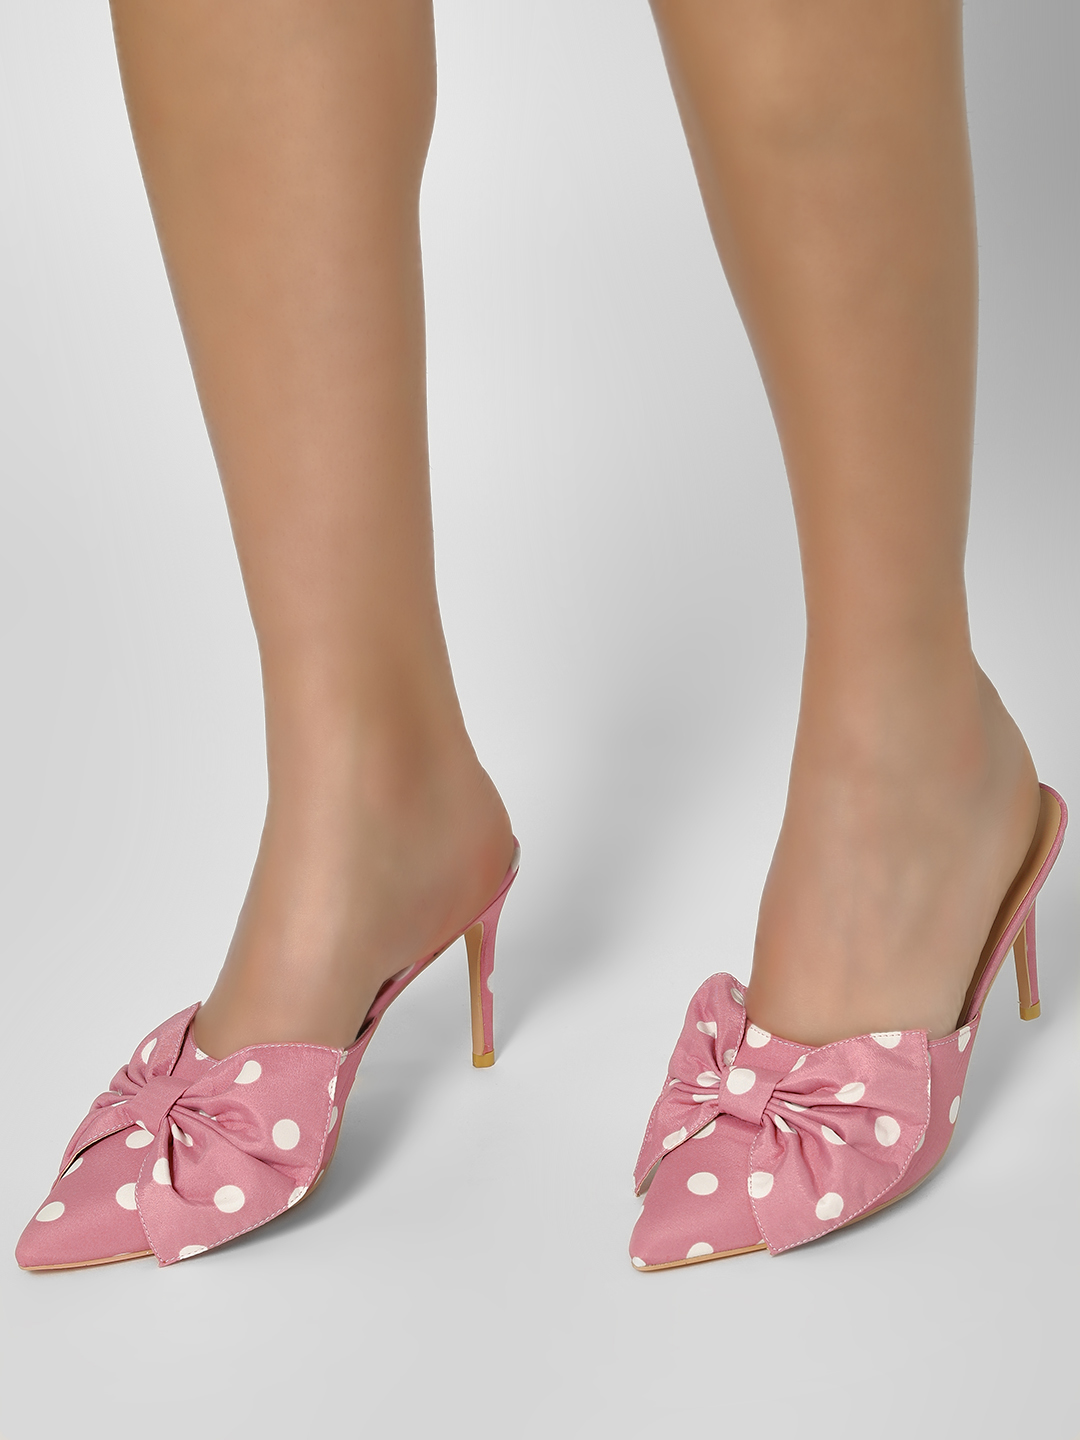 My Foot Couture Pink Polka Dot Heeled Sandals 1